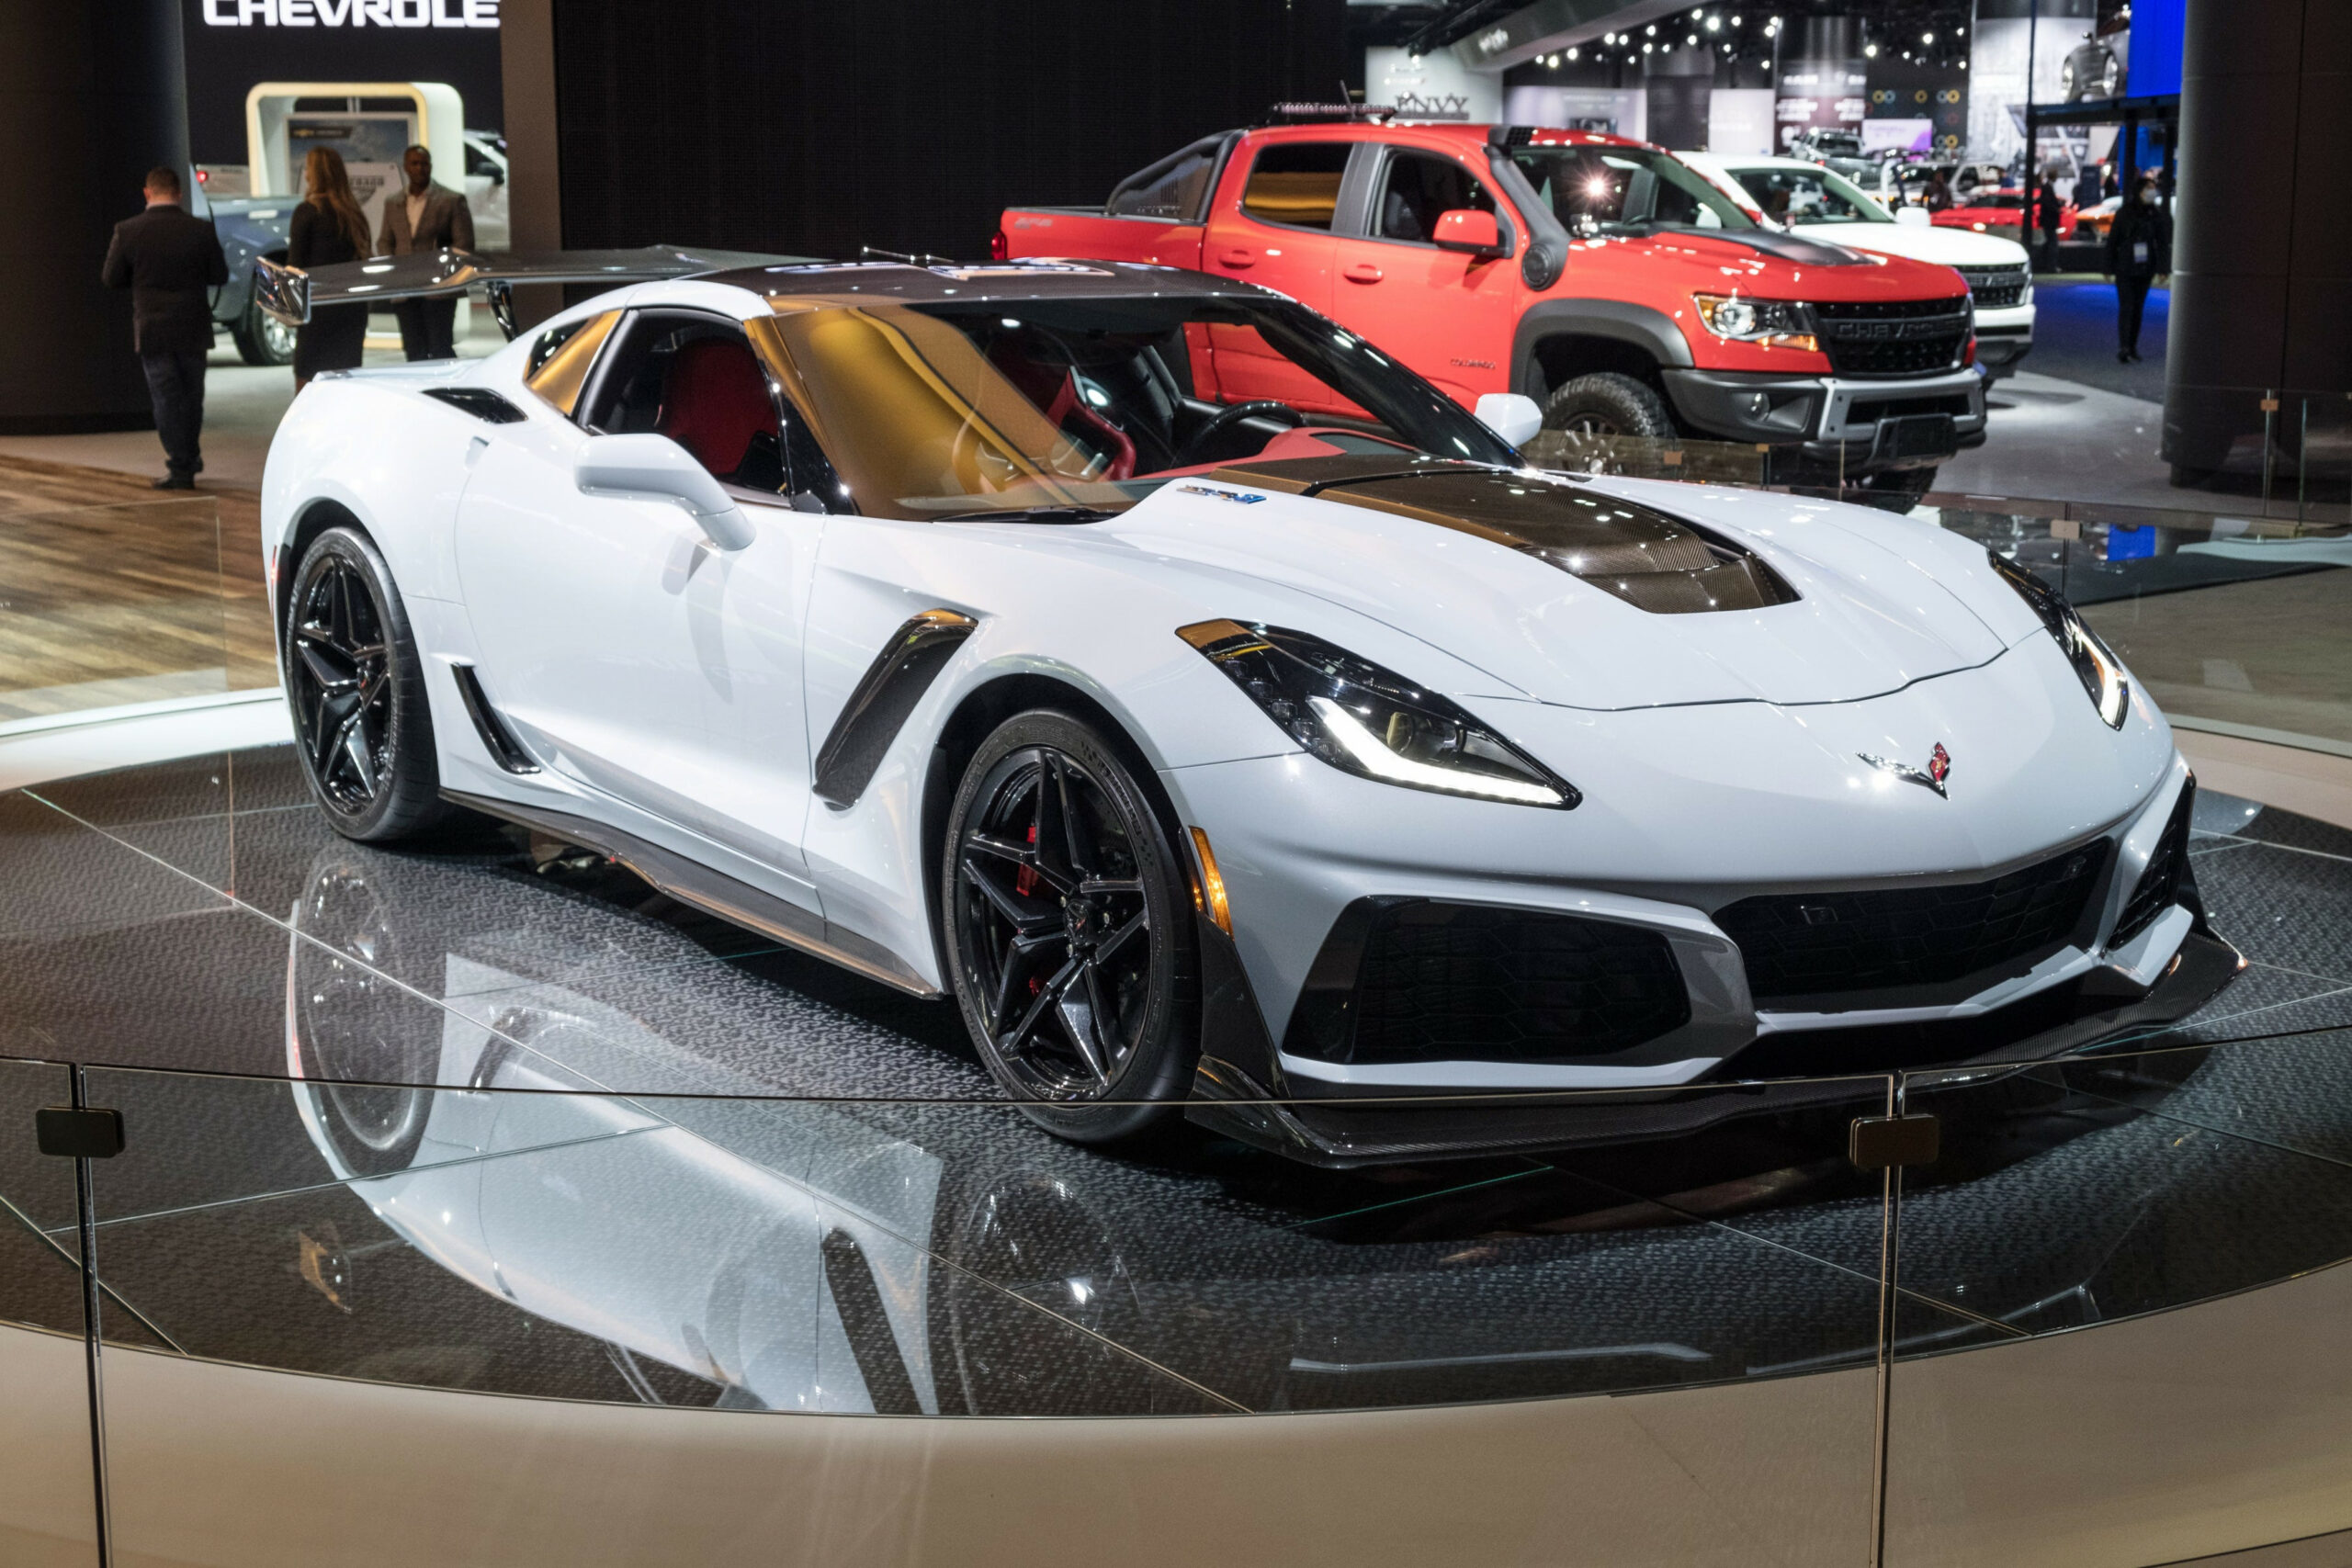 Corvette C8 for 8 is so fast, its frame bends in tests - chevrolet zr1 2020